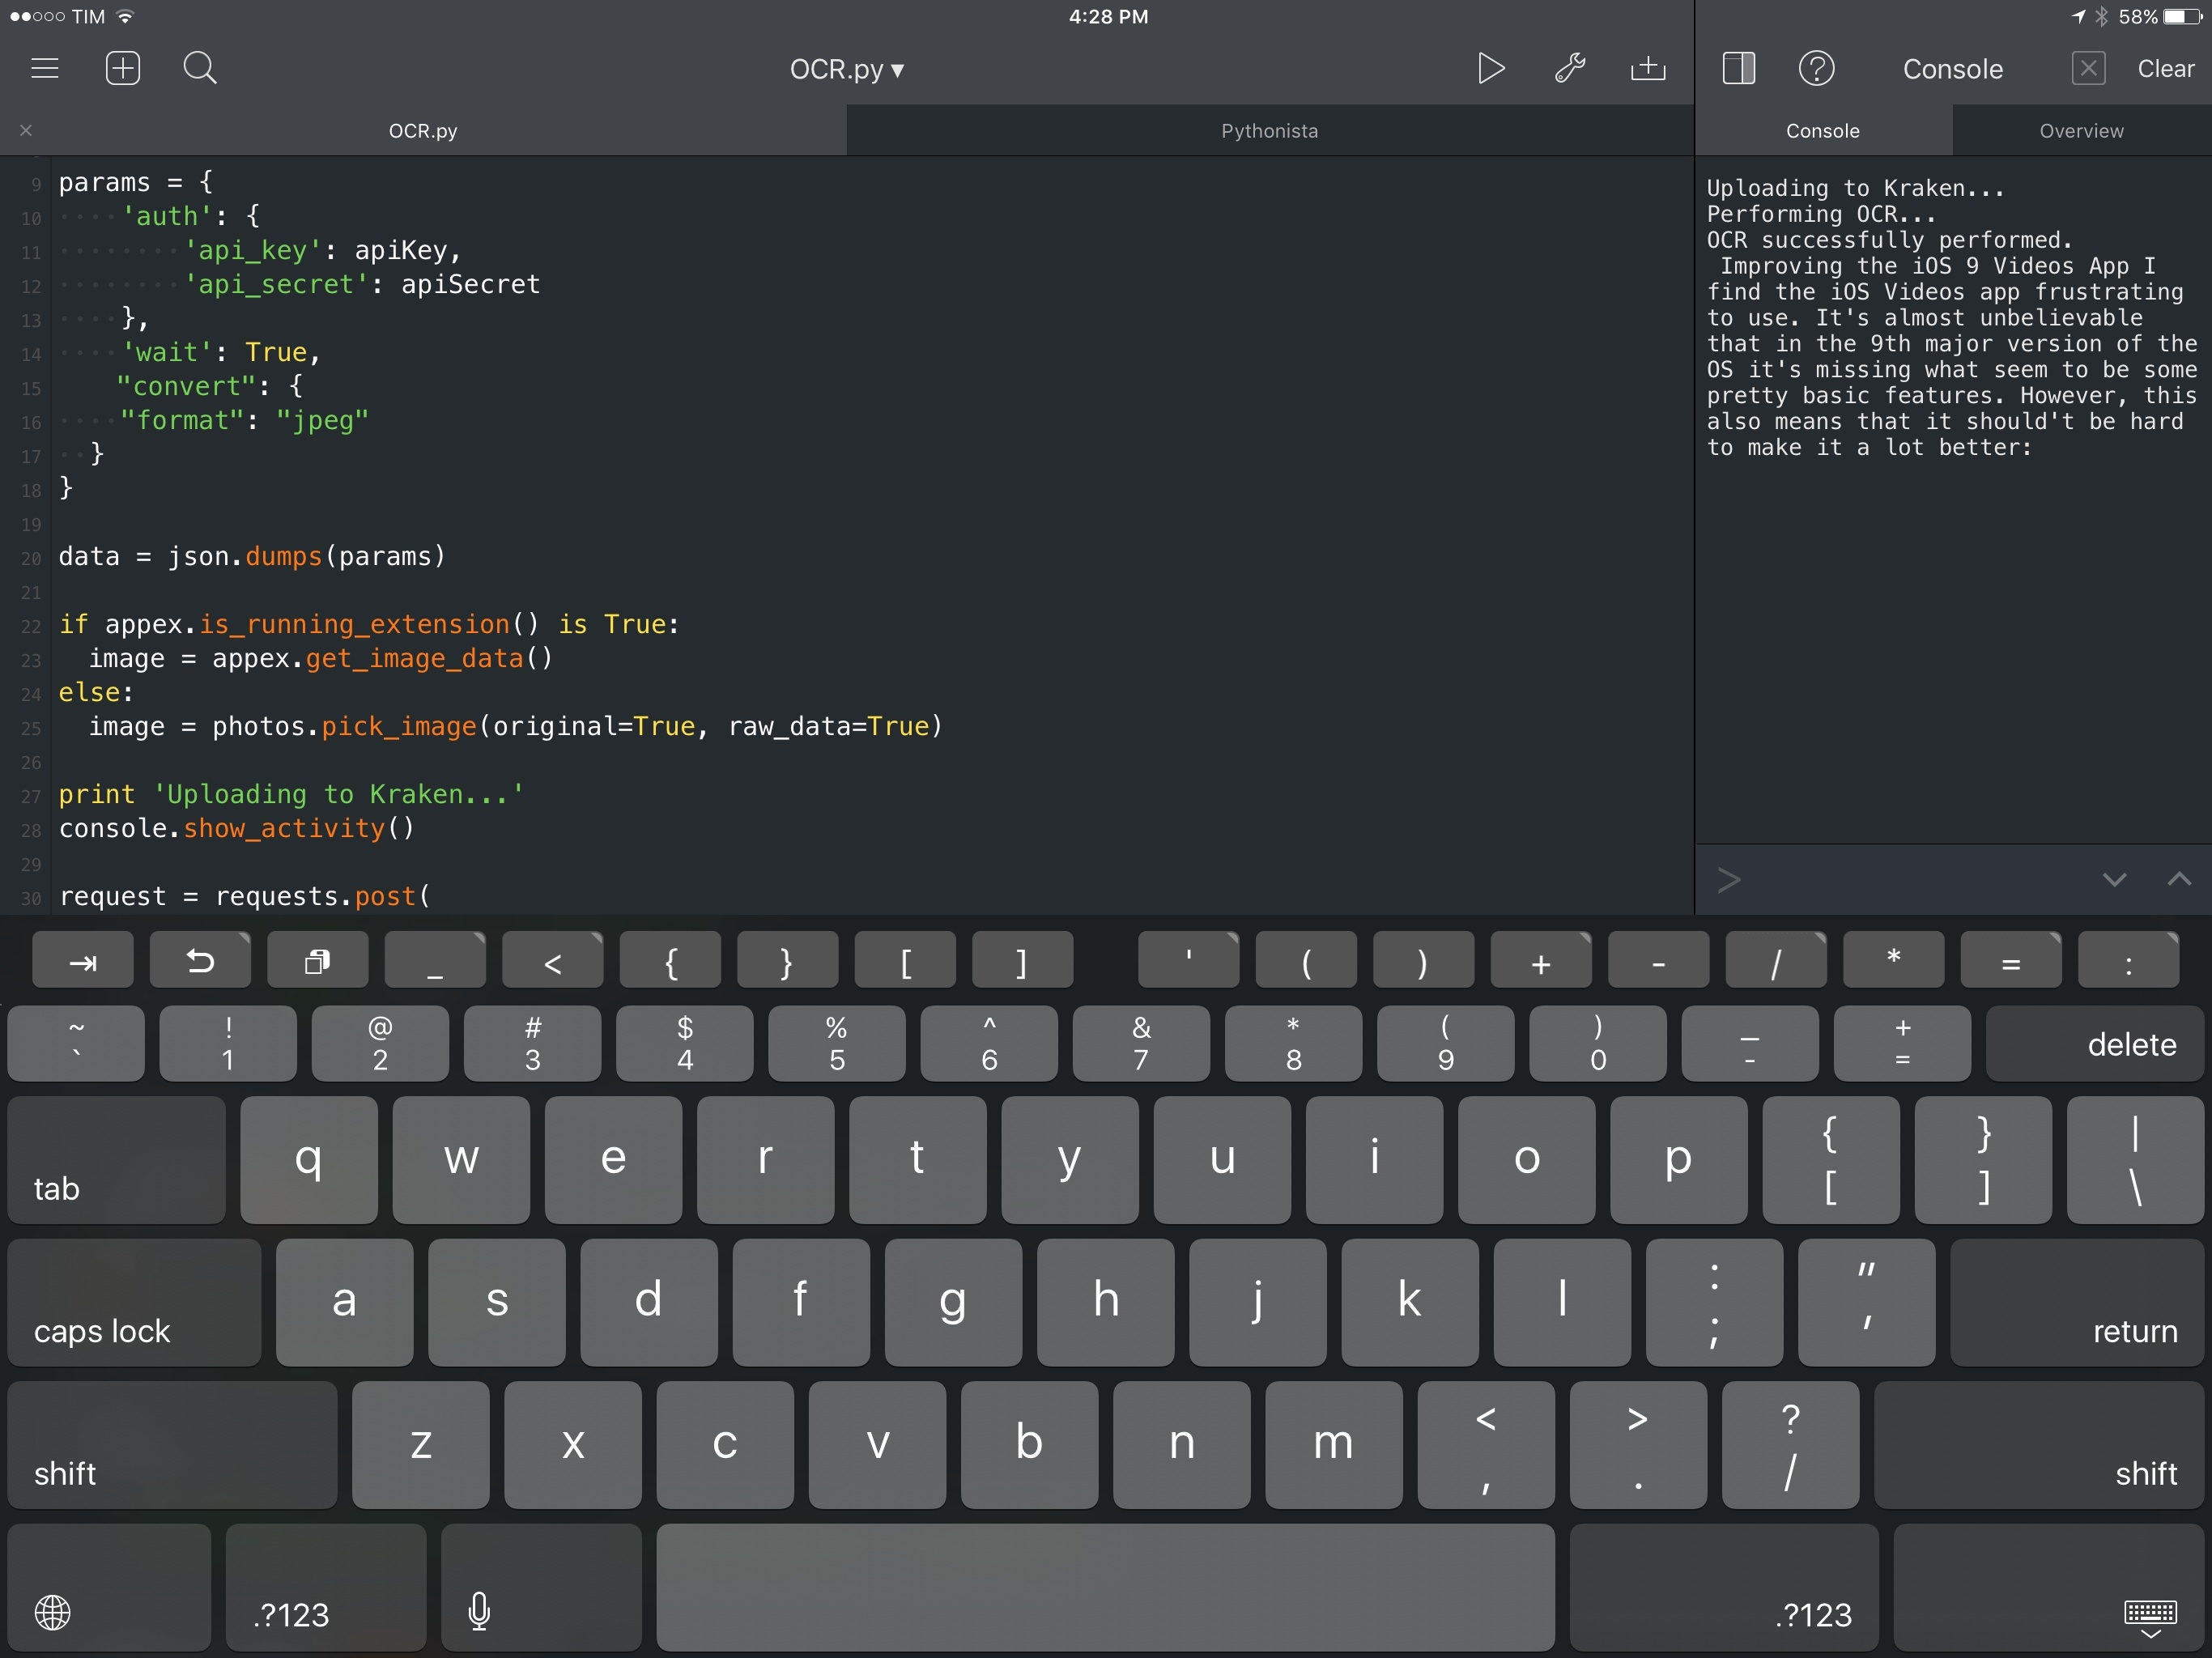 Pythonista 2 0 Brings Action Extension, iPad Pro Support